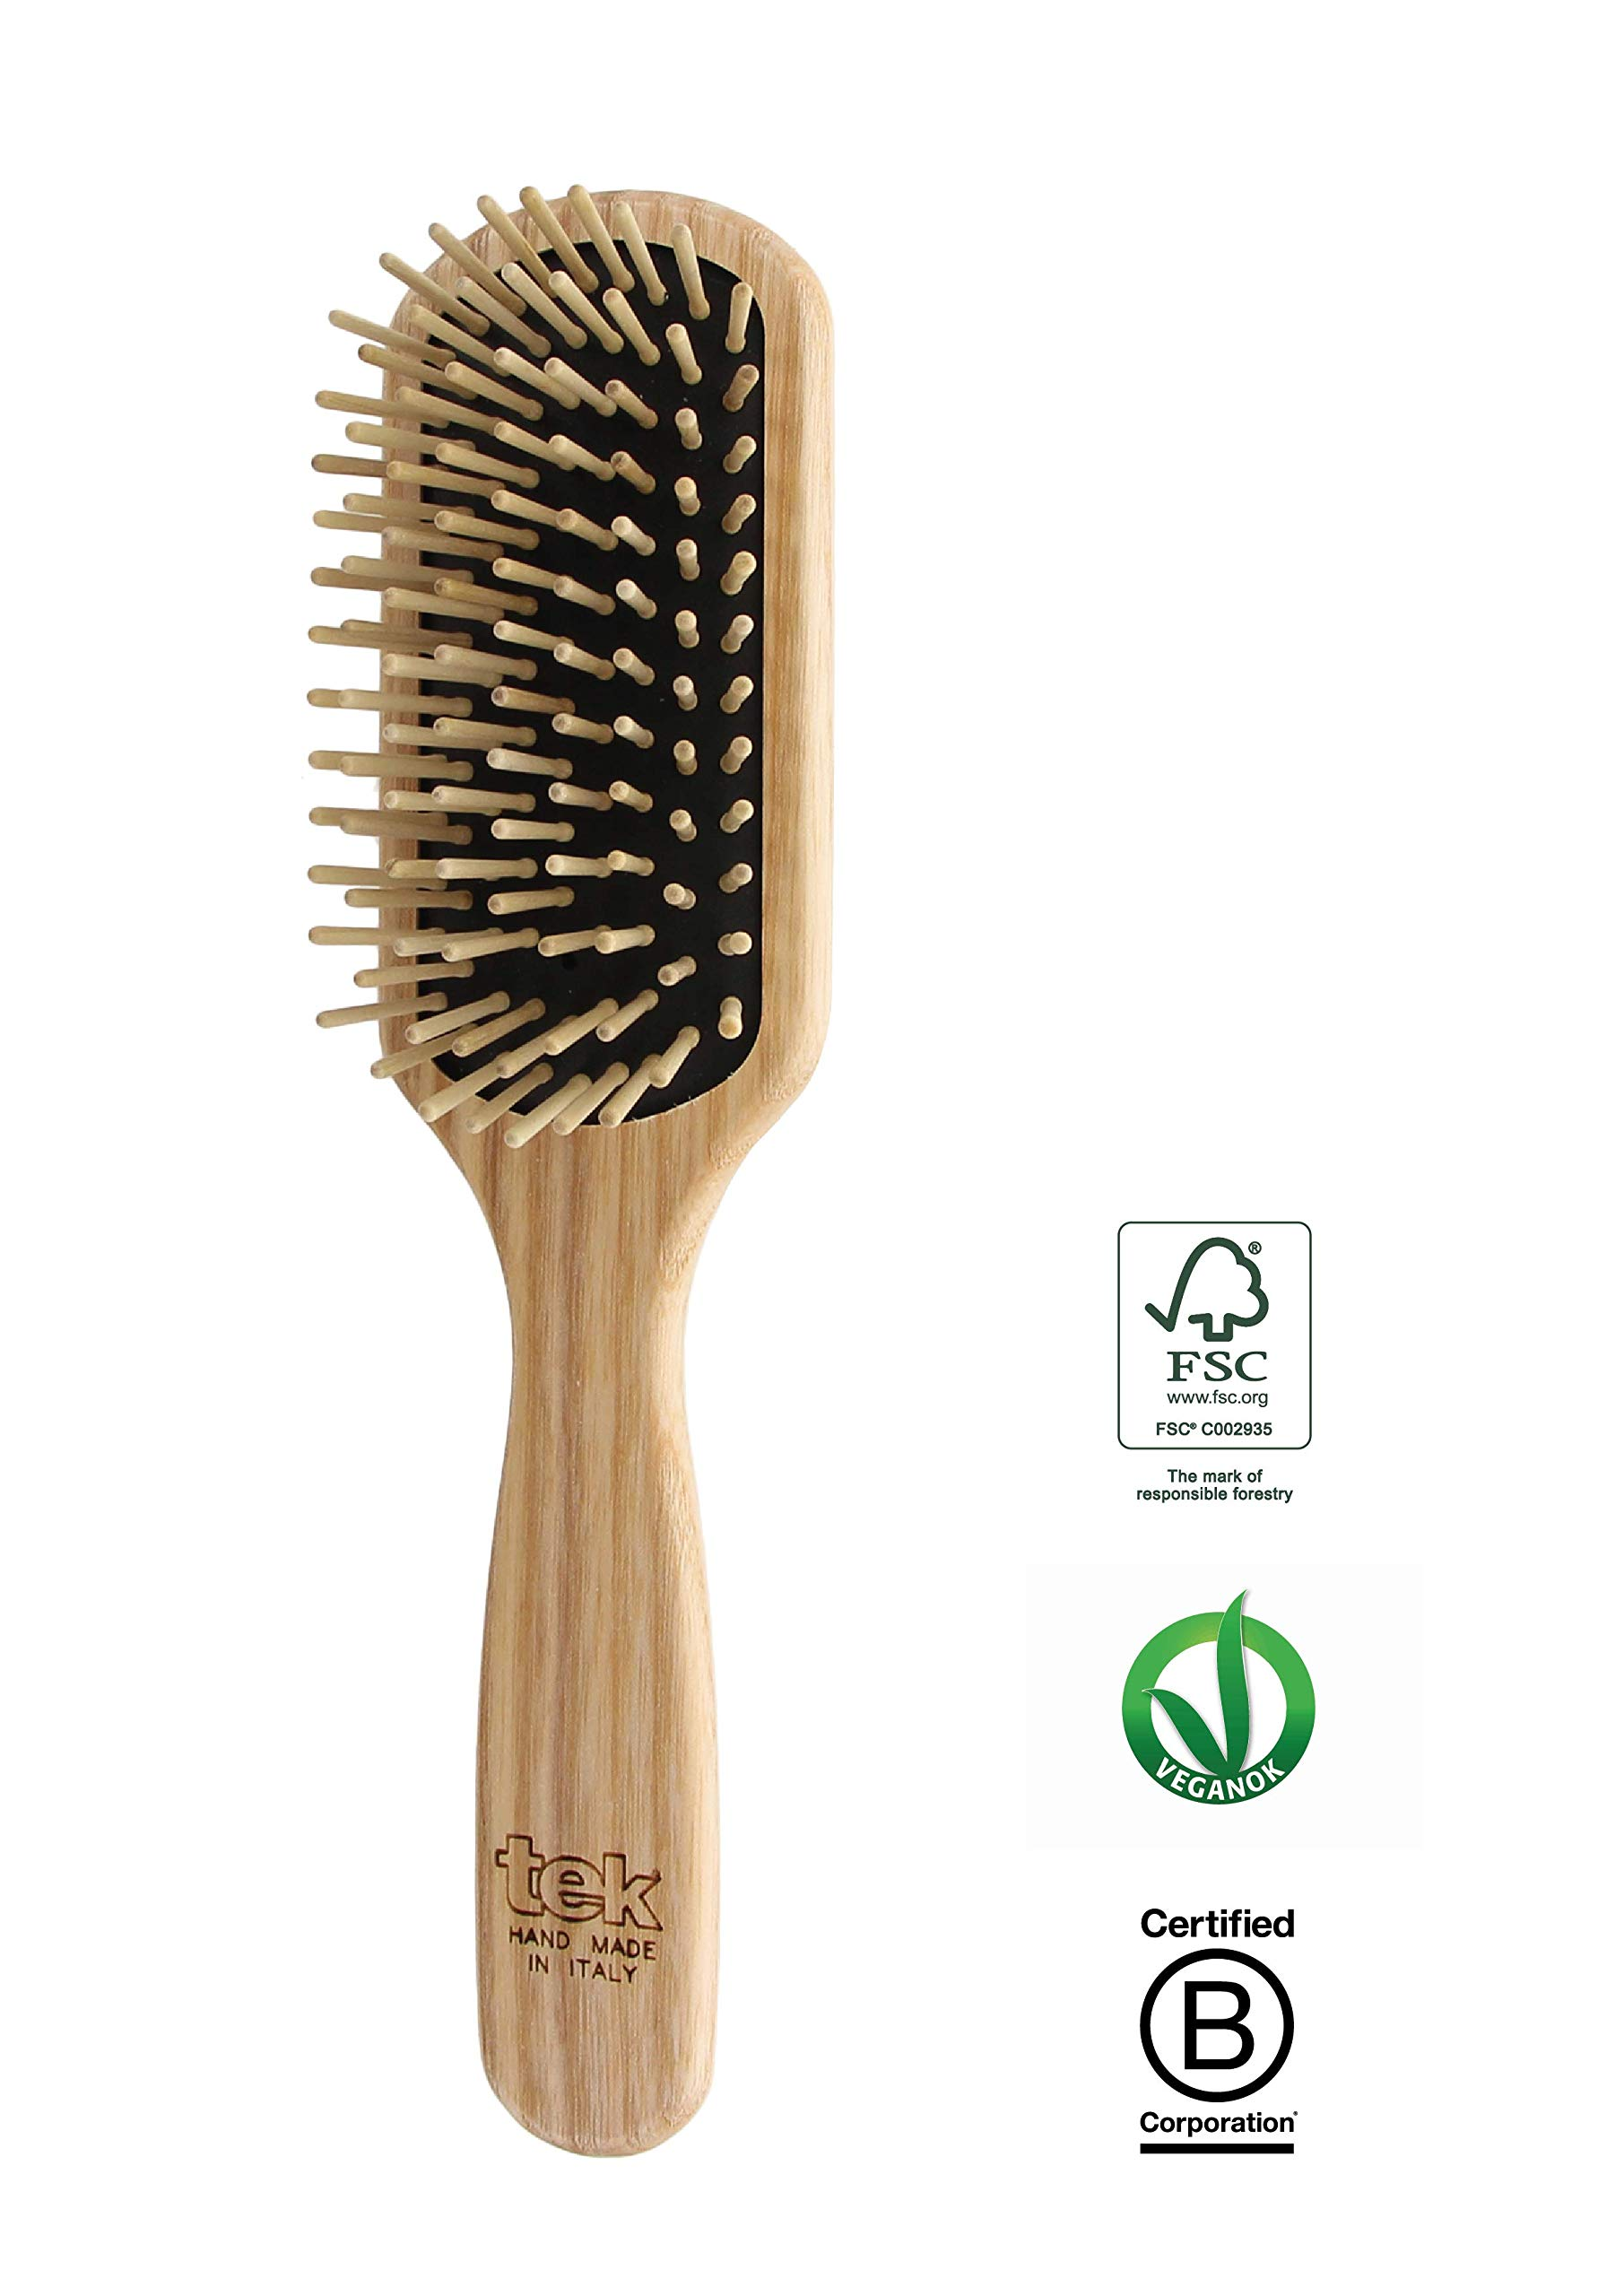 Tek small paddle hairbrush in ash wood with regular pins - Handmade in Italy